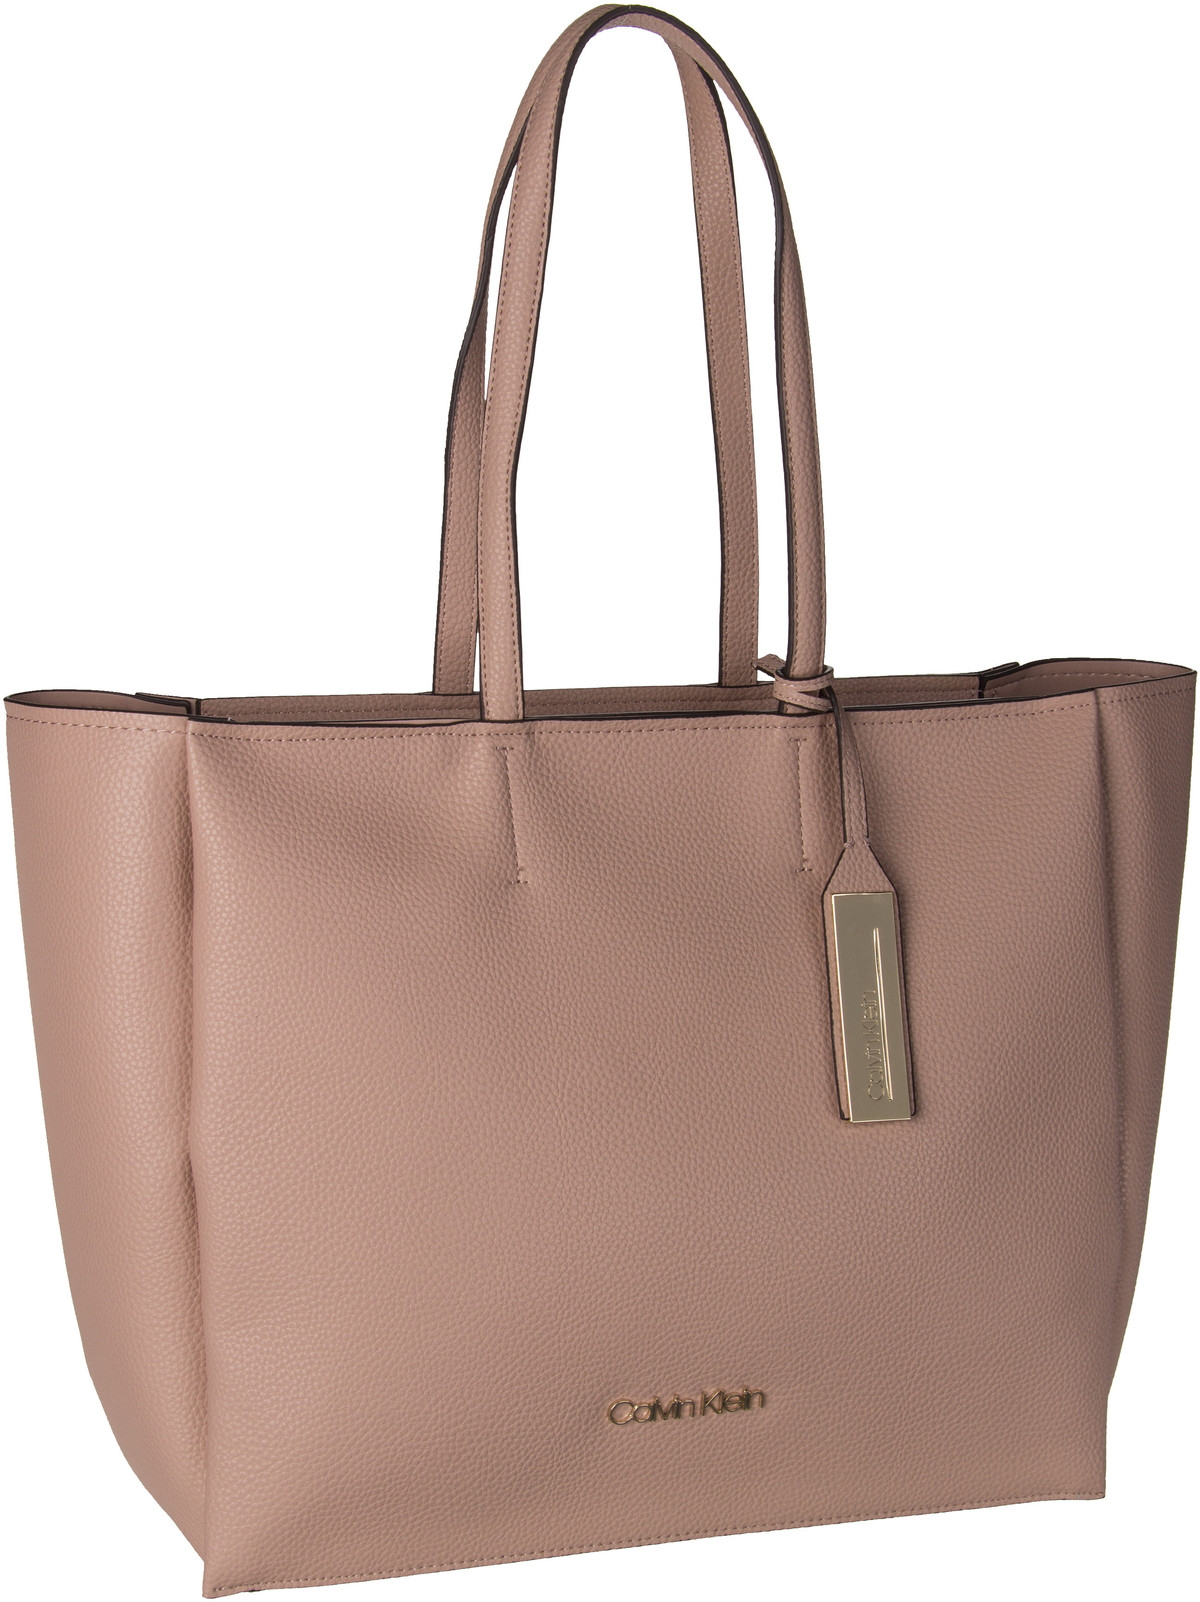 Calvin Klein Shopper Sided Shopper Nude